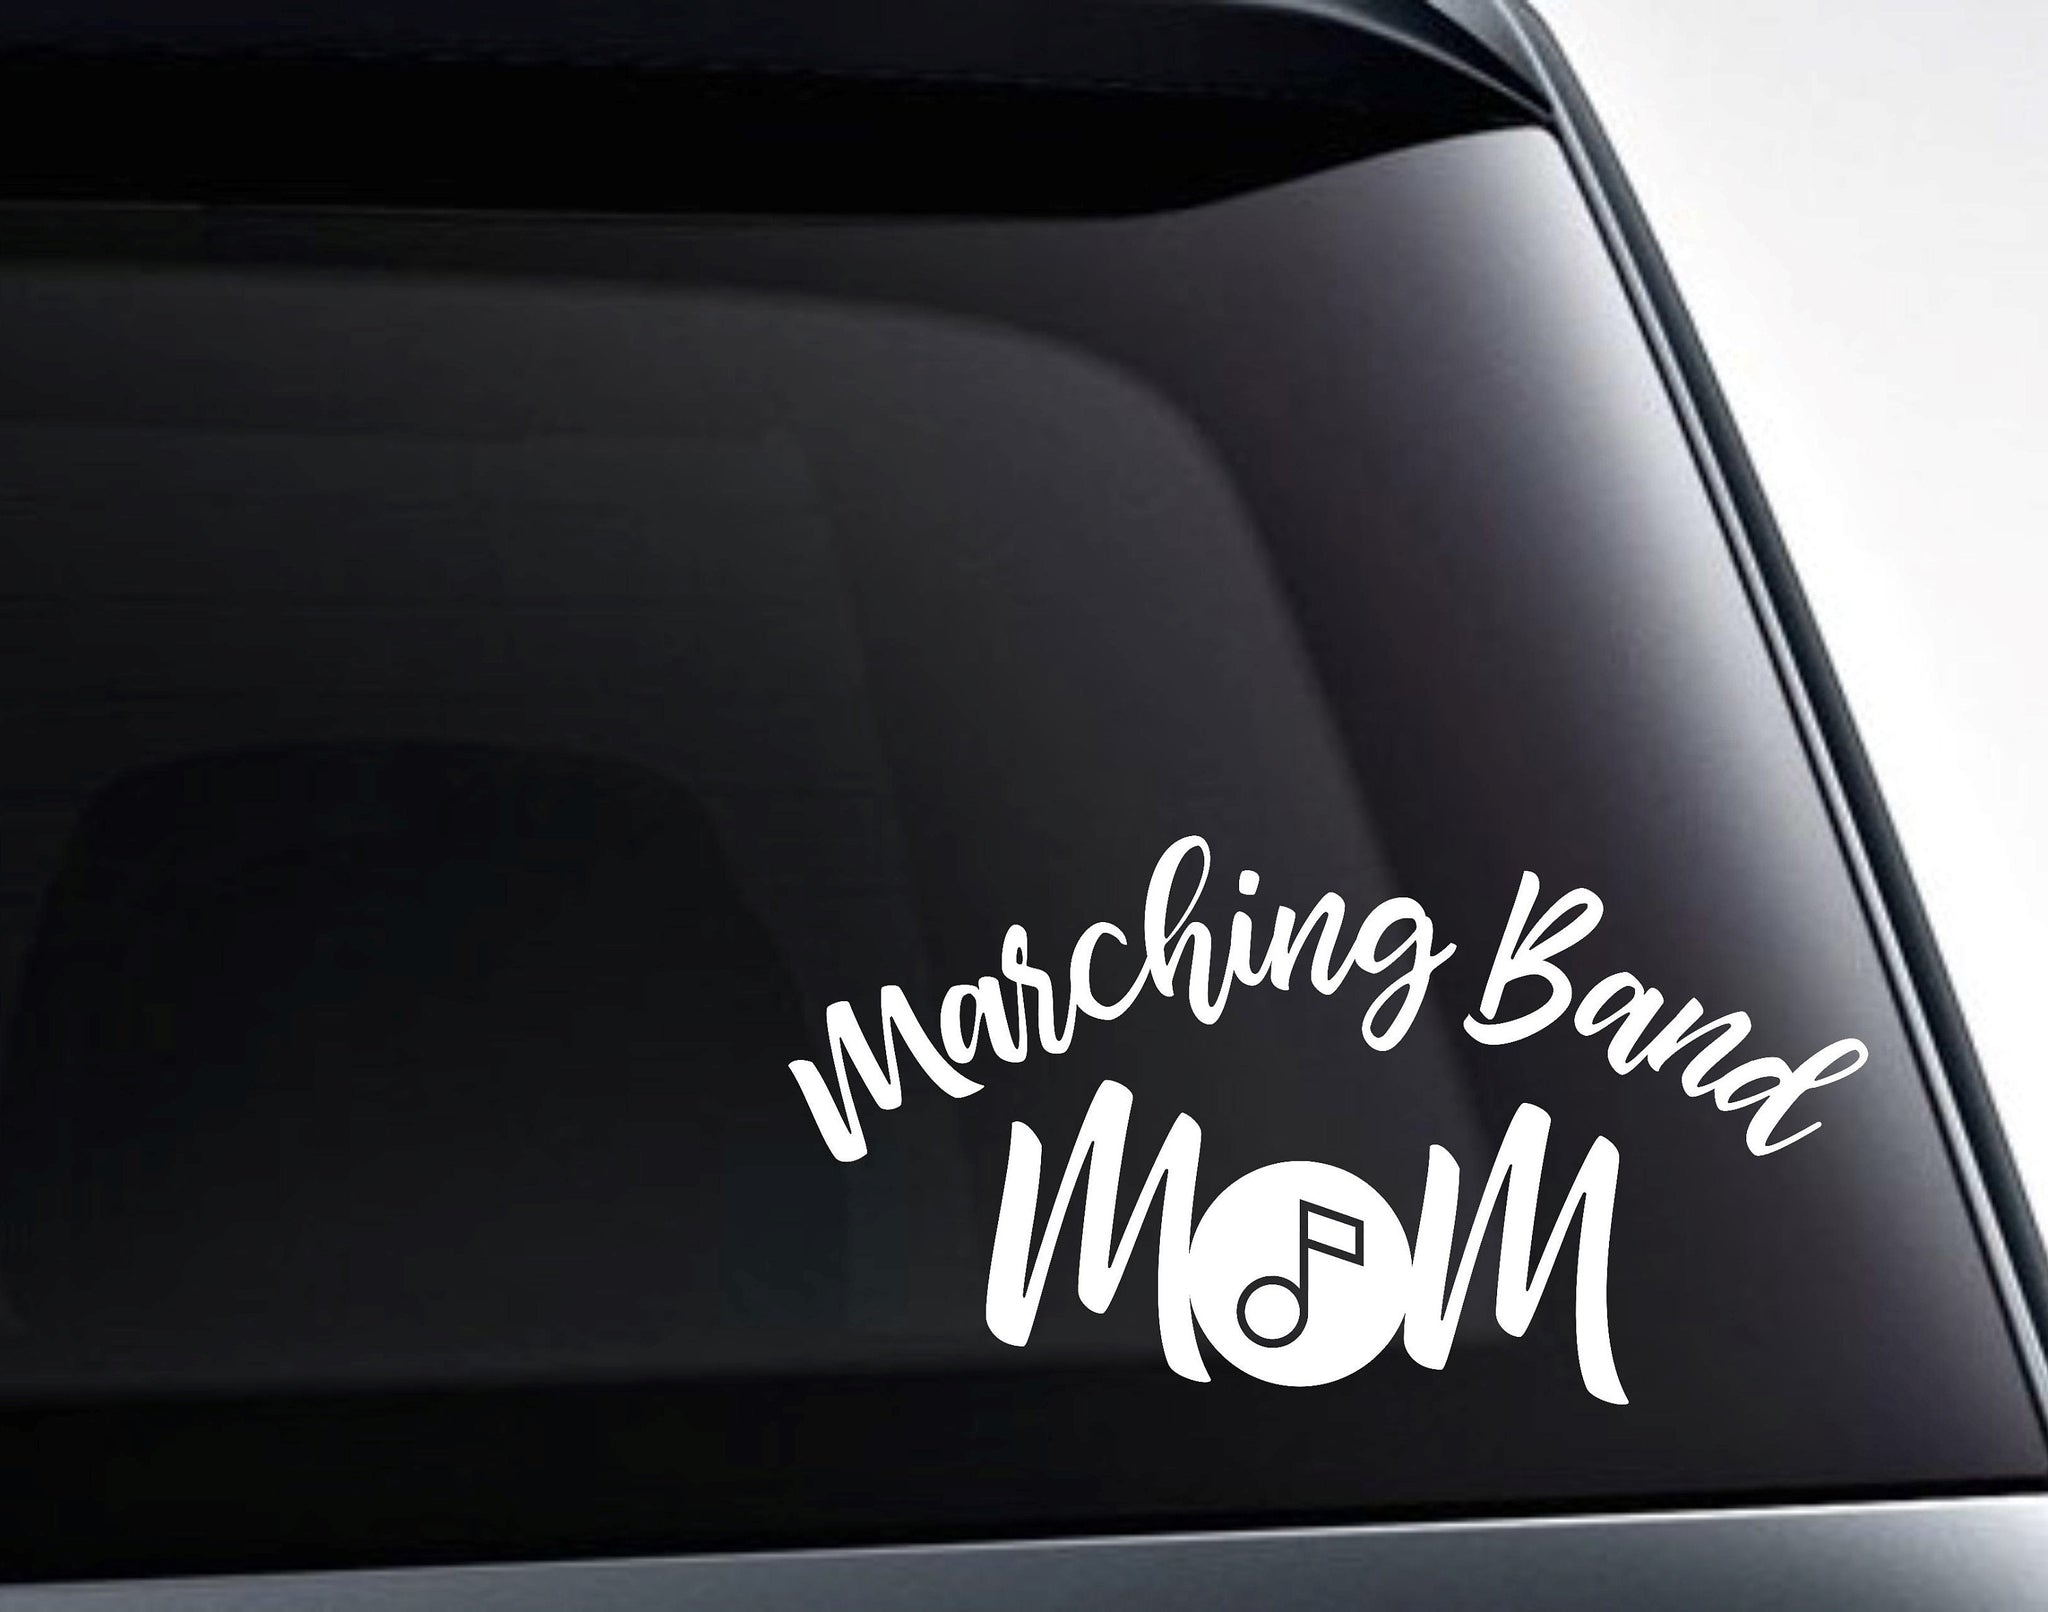 Marching Band Mom Musical Note Vinyl Decal Sticker